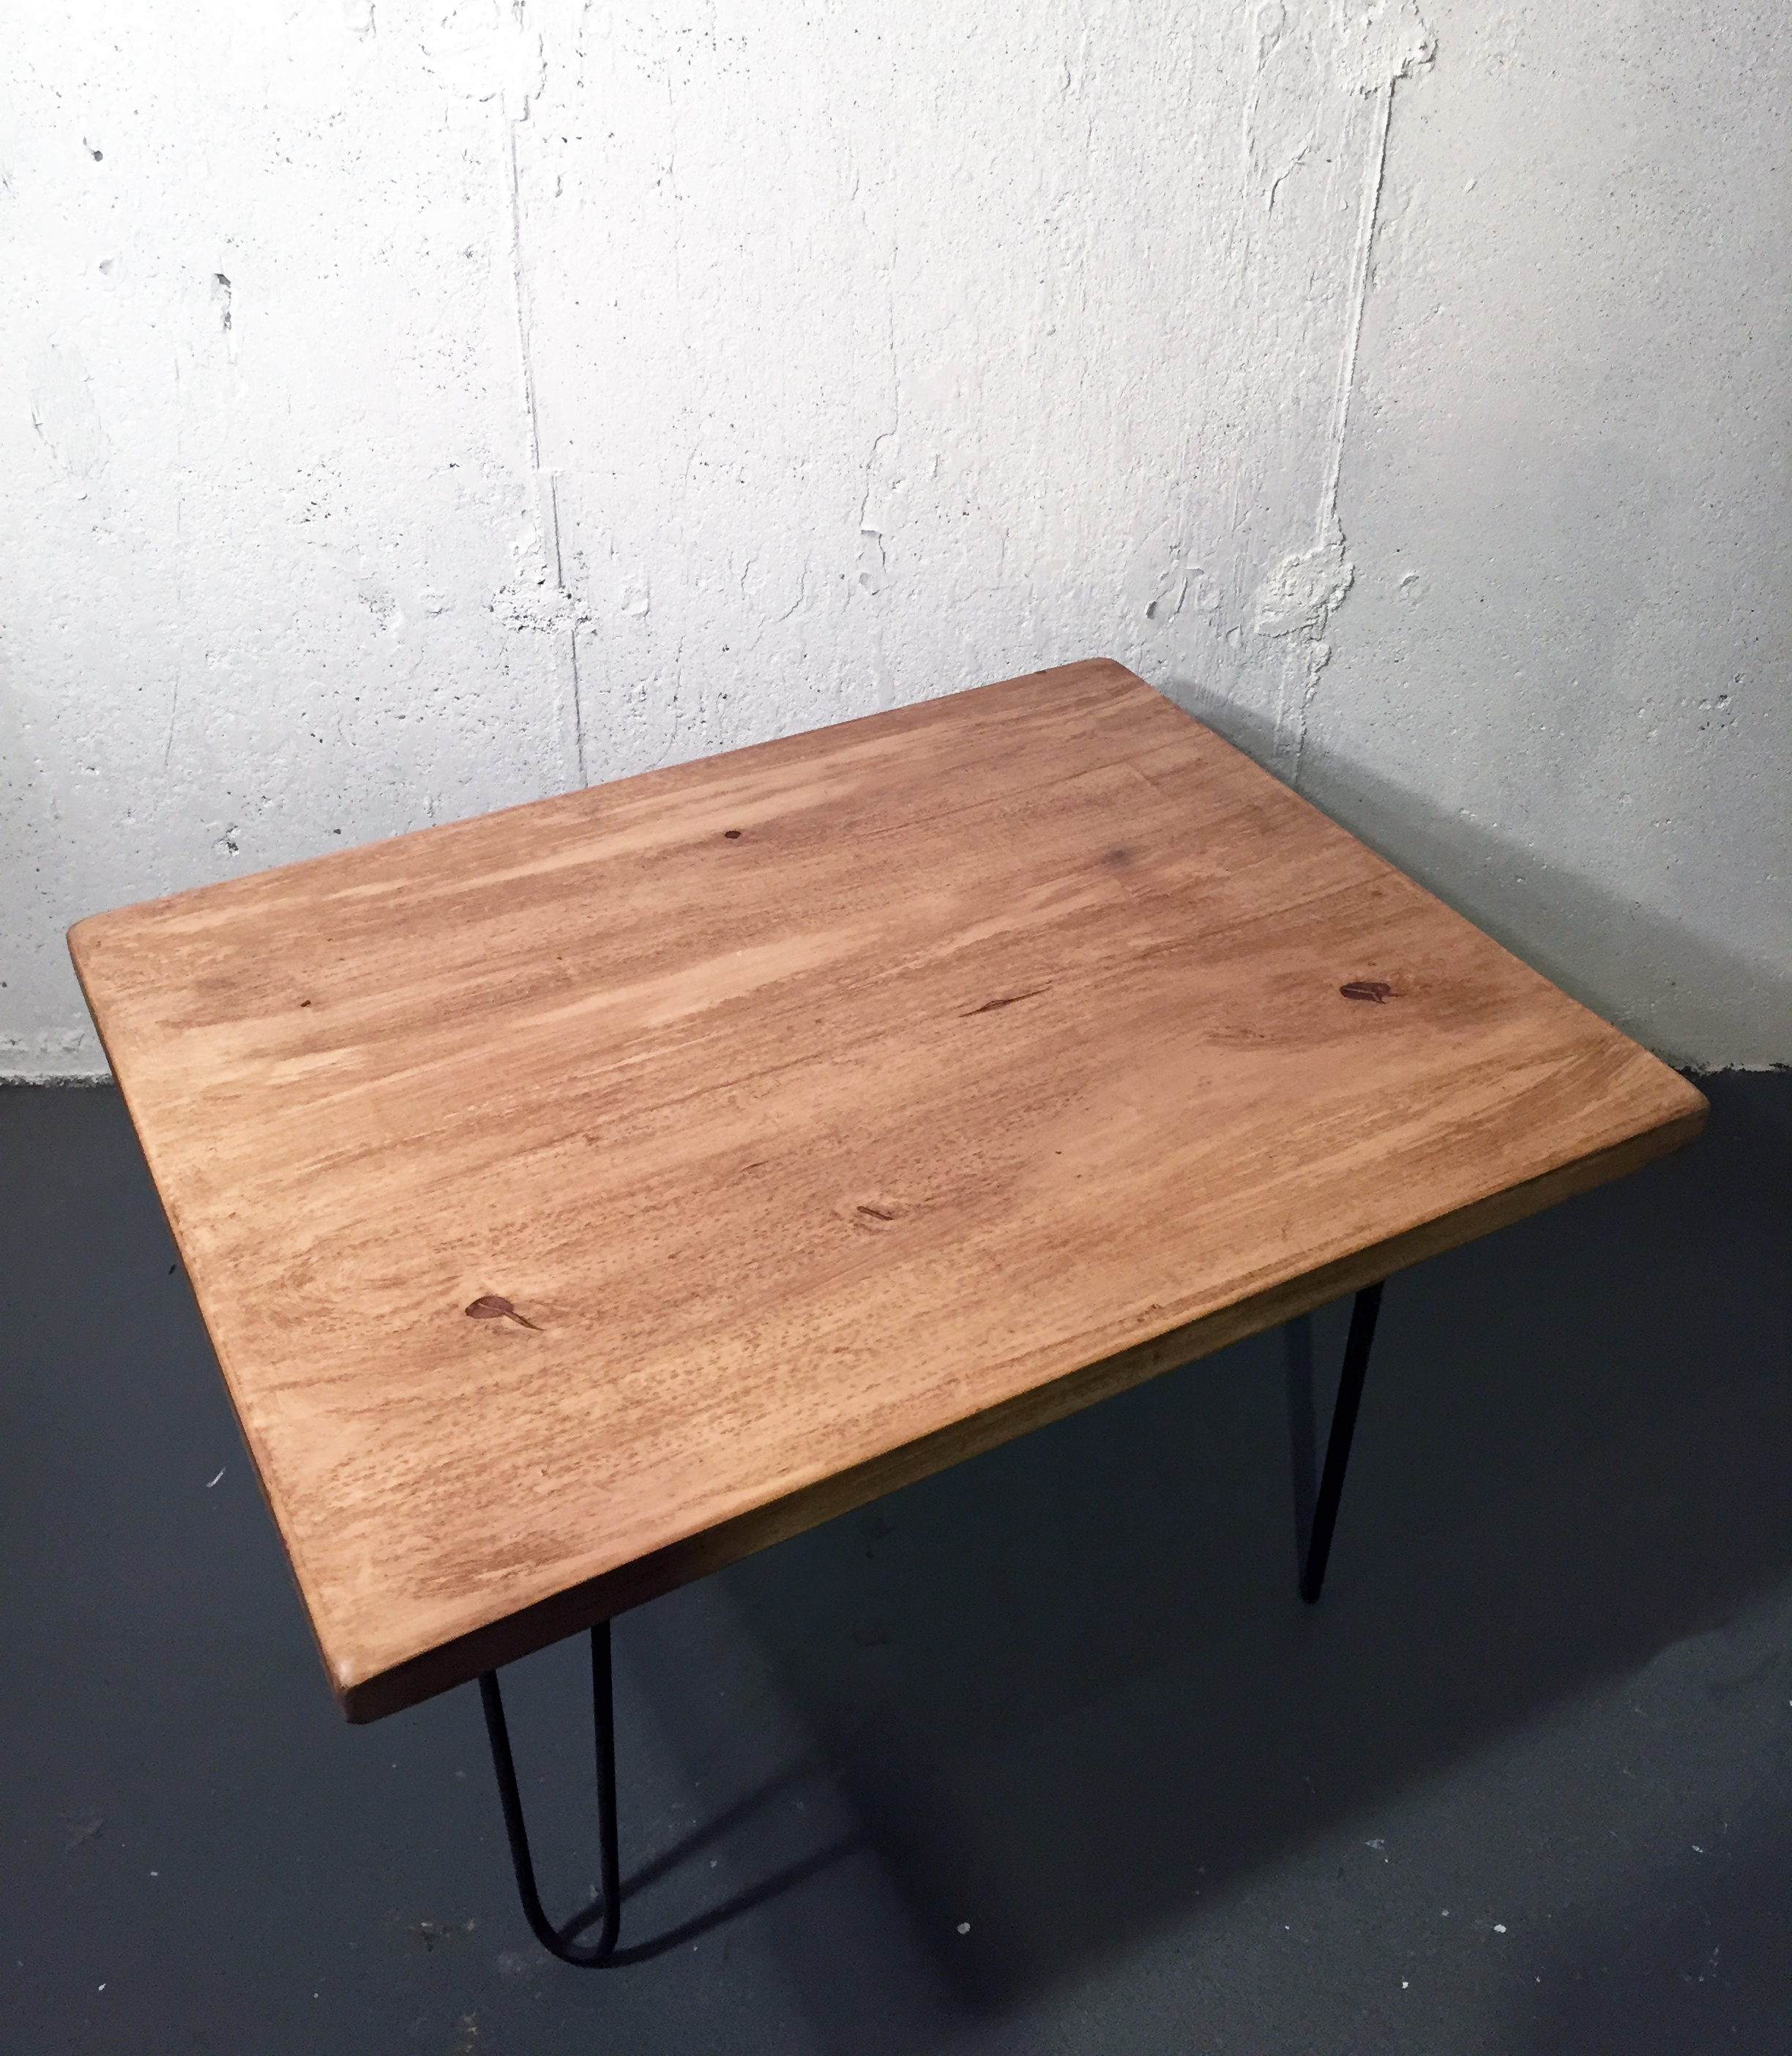 Repurposed Wood Coffee Table With Hairpin Legs   Image 7 Of 7